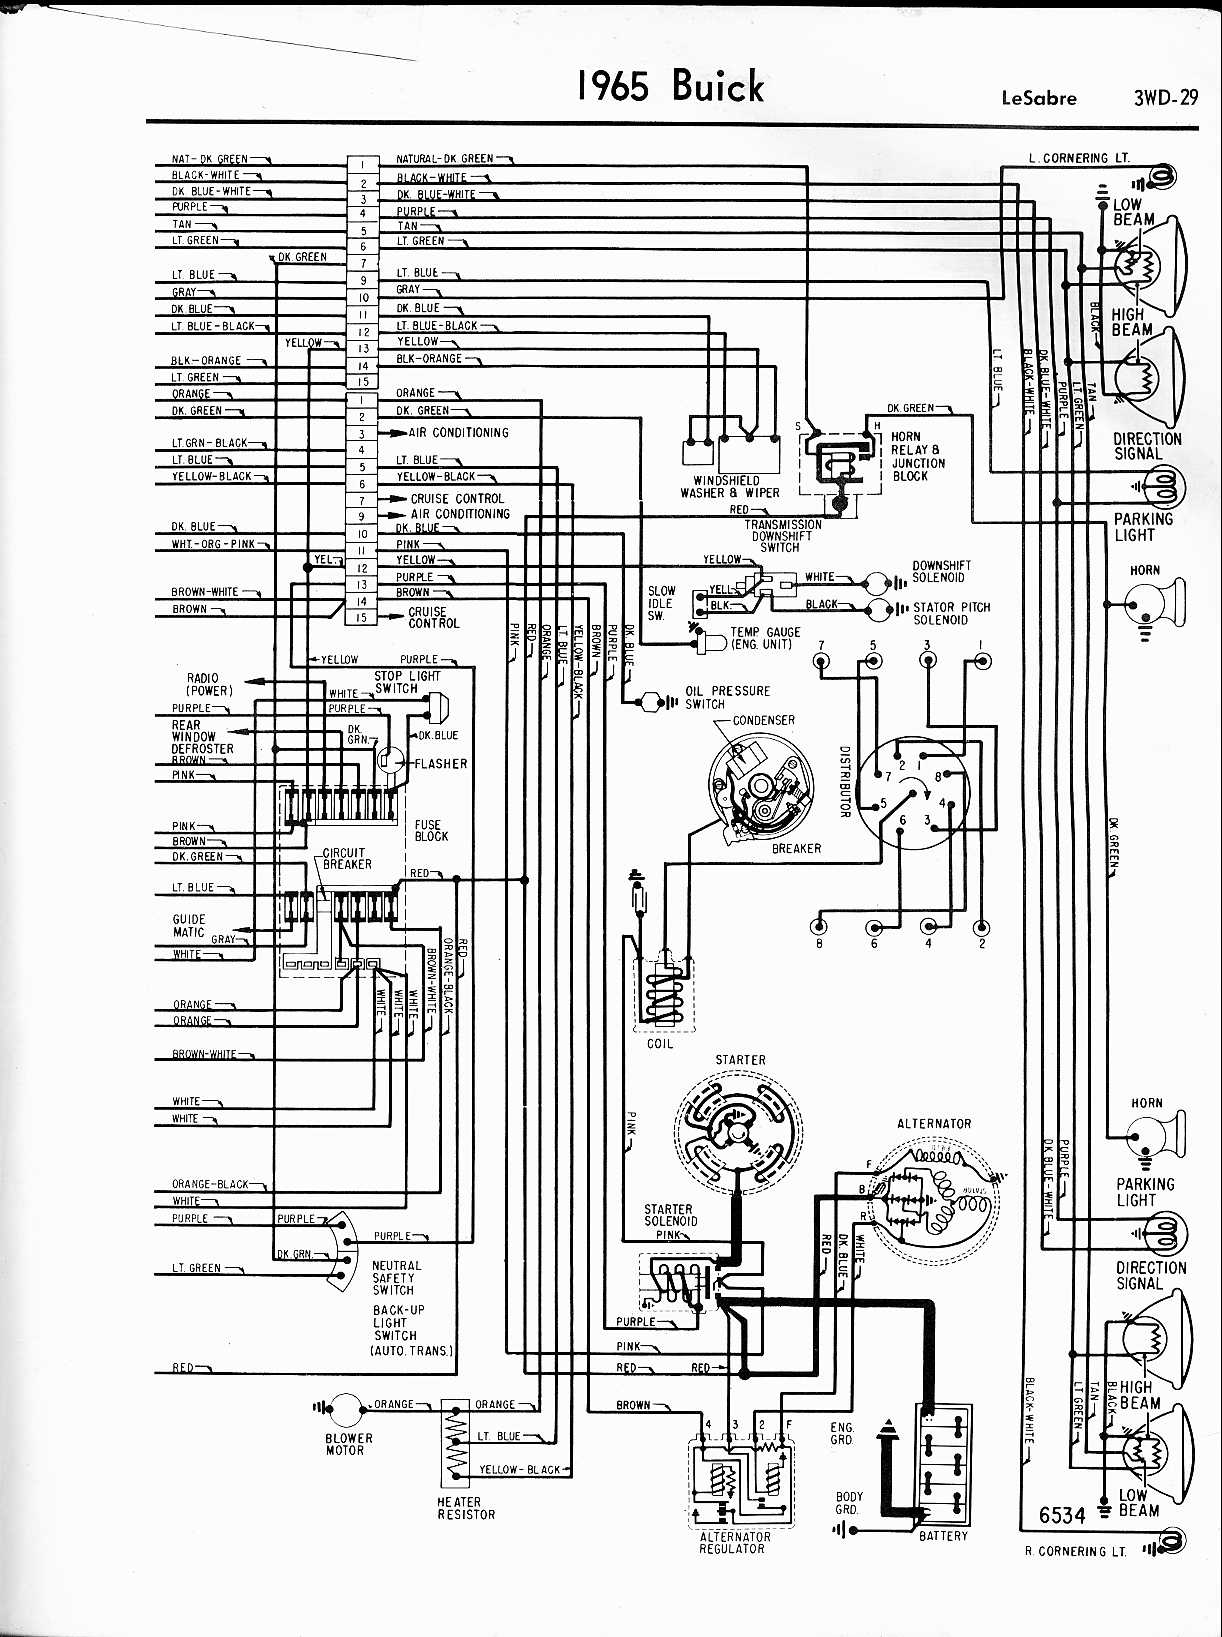 2002 Mustang Gt Engine Diagram Wiring Library 1965 Light Free Buick Diagrams Data Schematics U2022 Rh Xrkarting Com